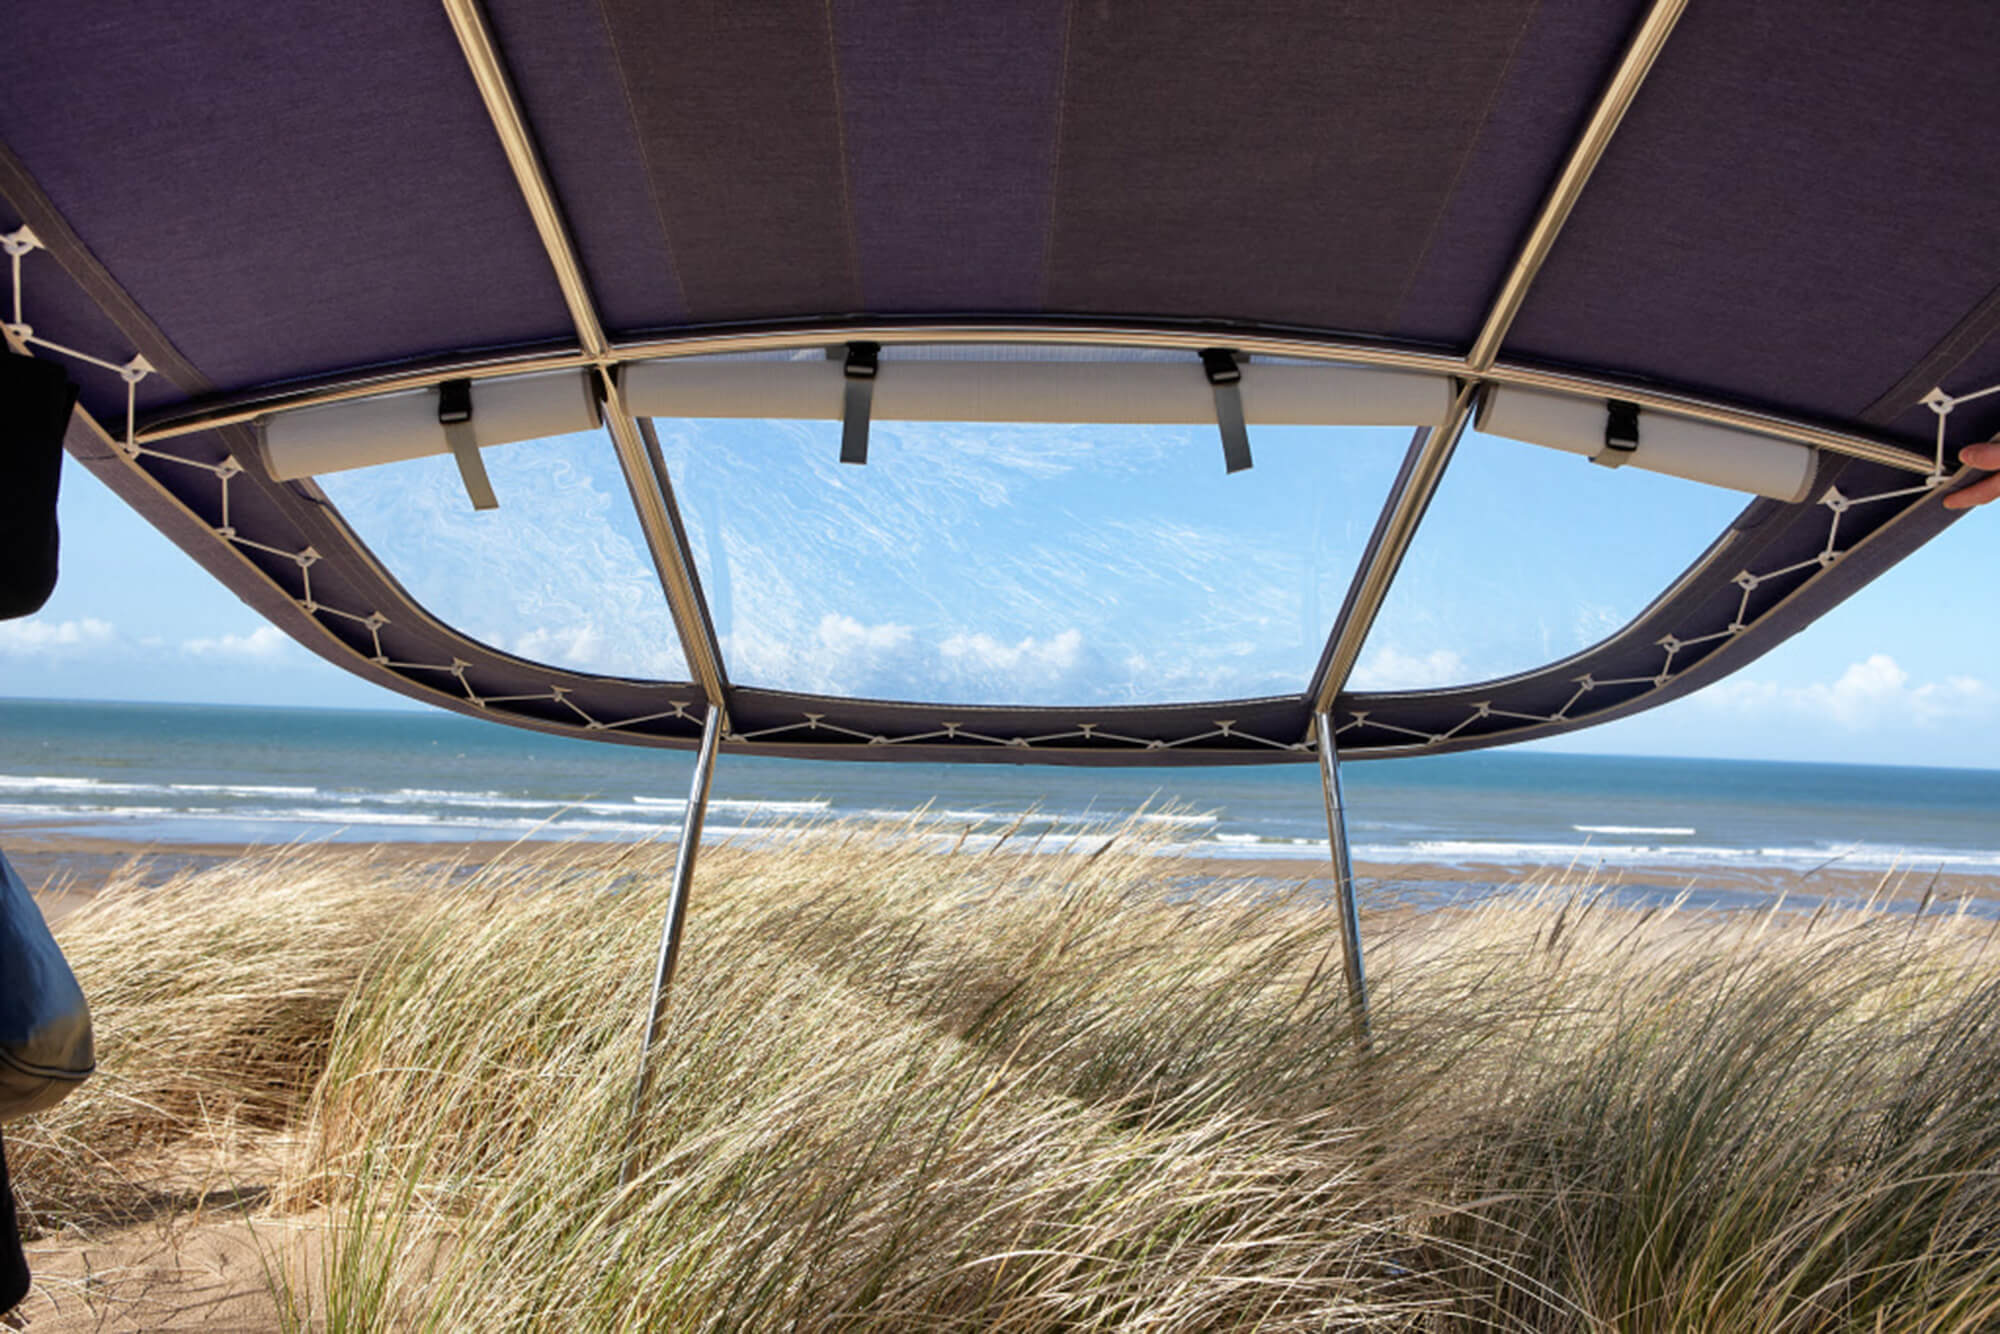 A Bimini made using Sunbrella fabric sits in the grass